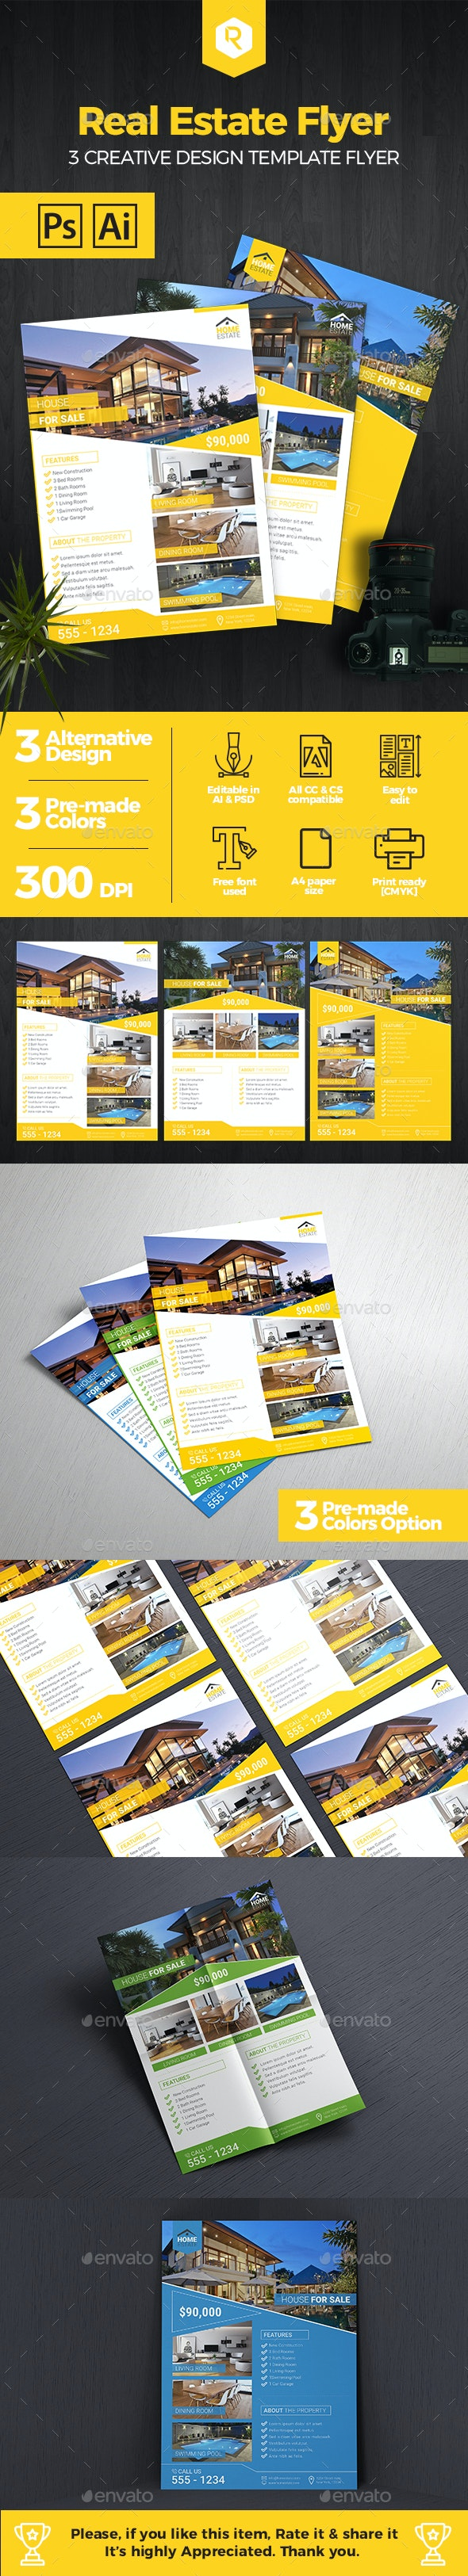 Premium Real Estate Flyer Template - Commerce Flyers